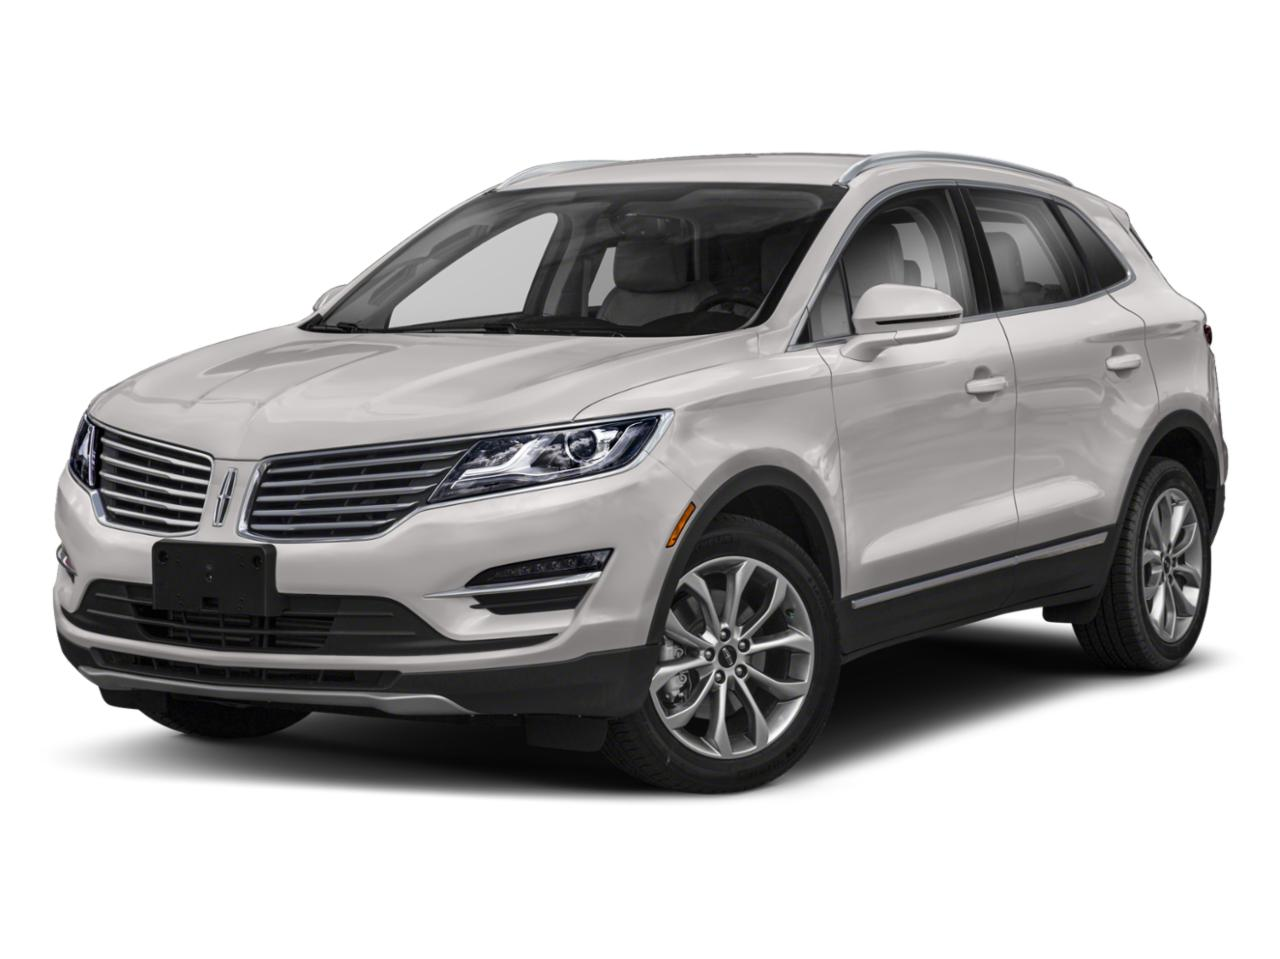 2018 LINCOLN MKC Vehicle Photo in Signal Hill, CA 90755